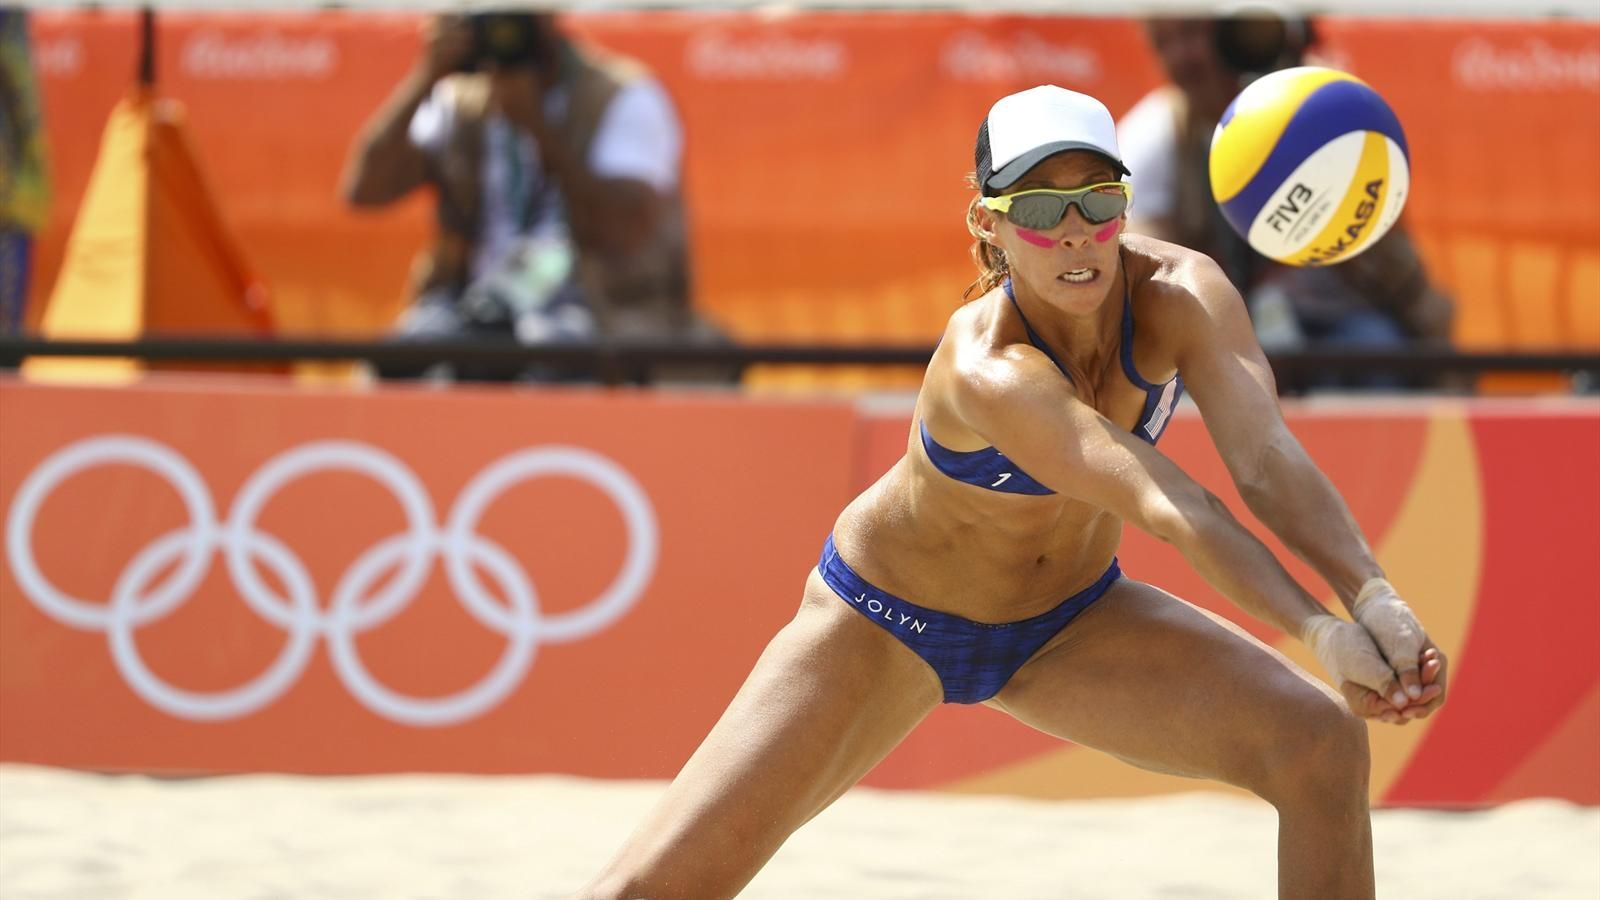 Crowds Taunt U S Players With Zika Jeers Olympic Volleyball Rio Olympics 2016 Female Volleyball Players